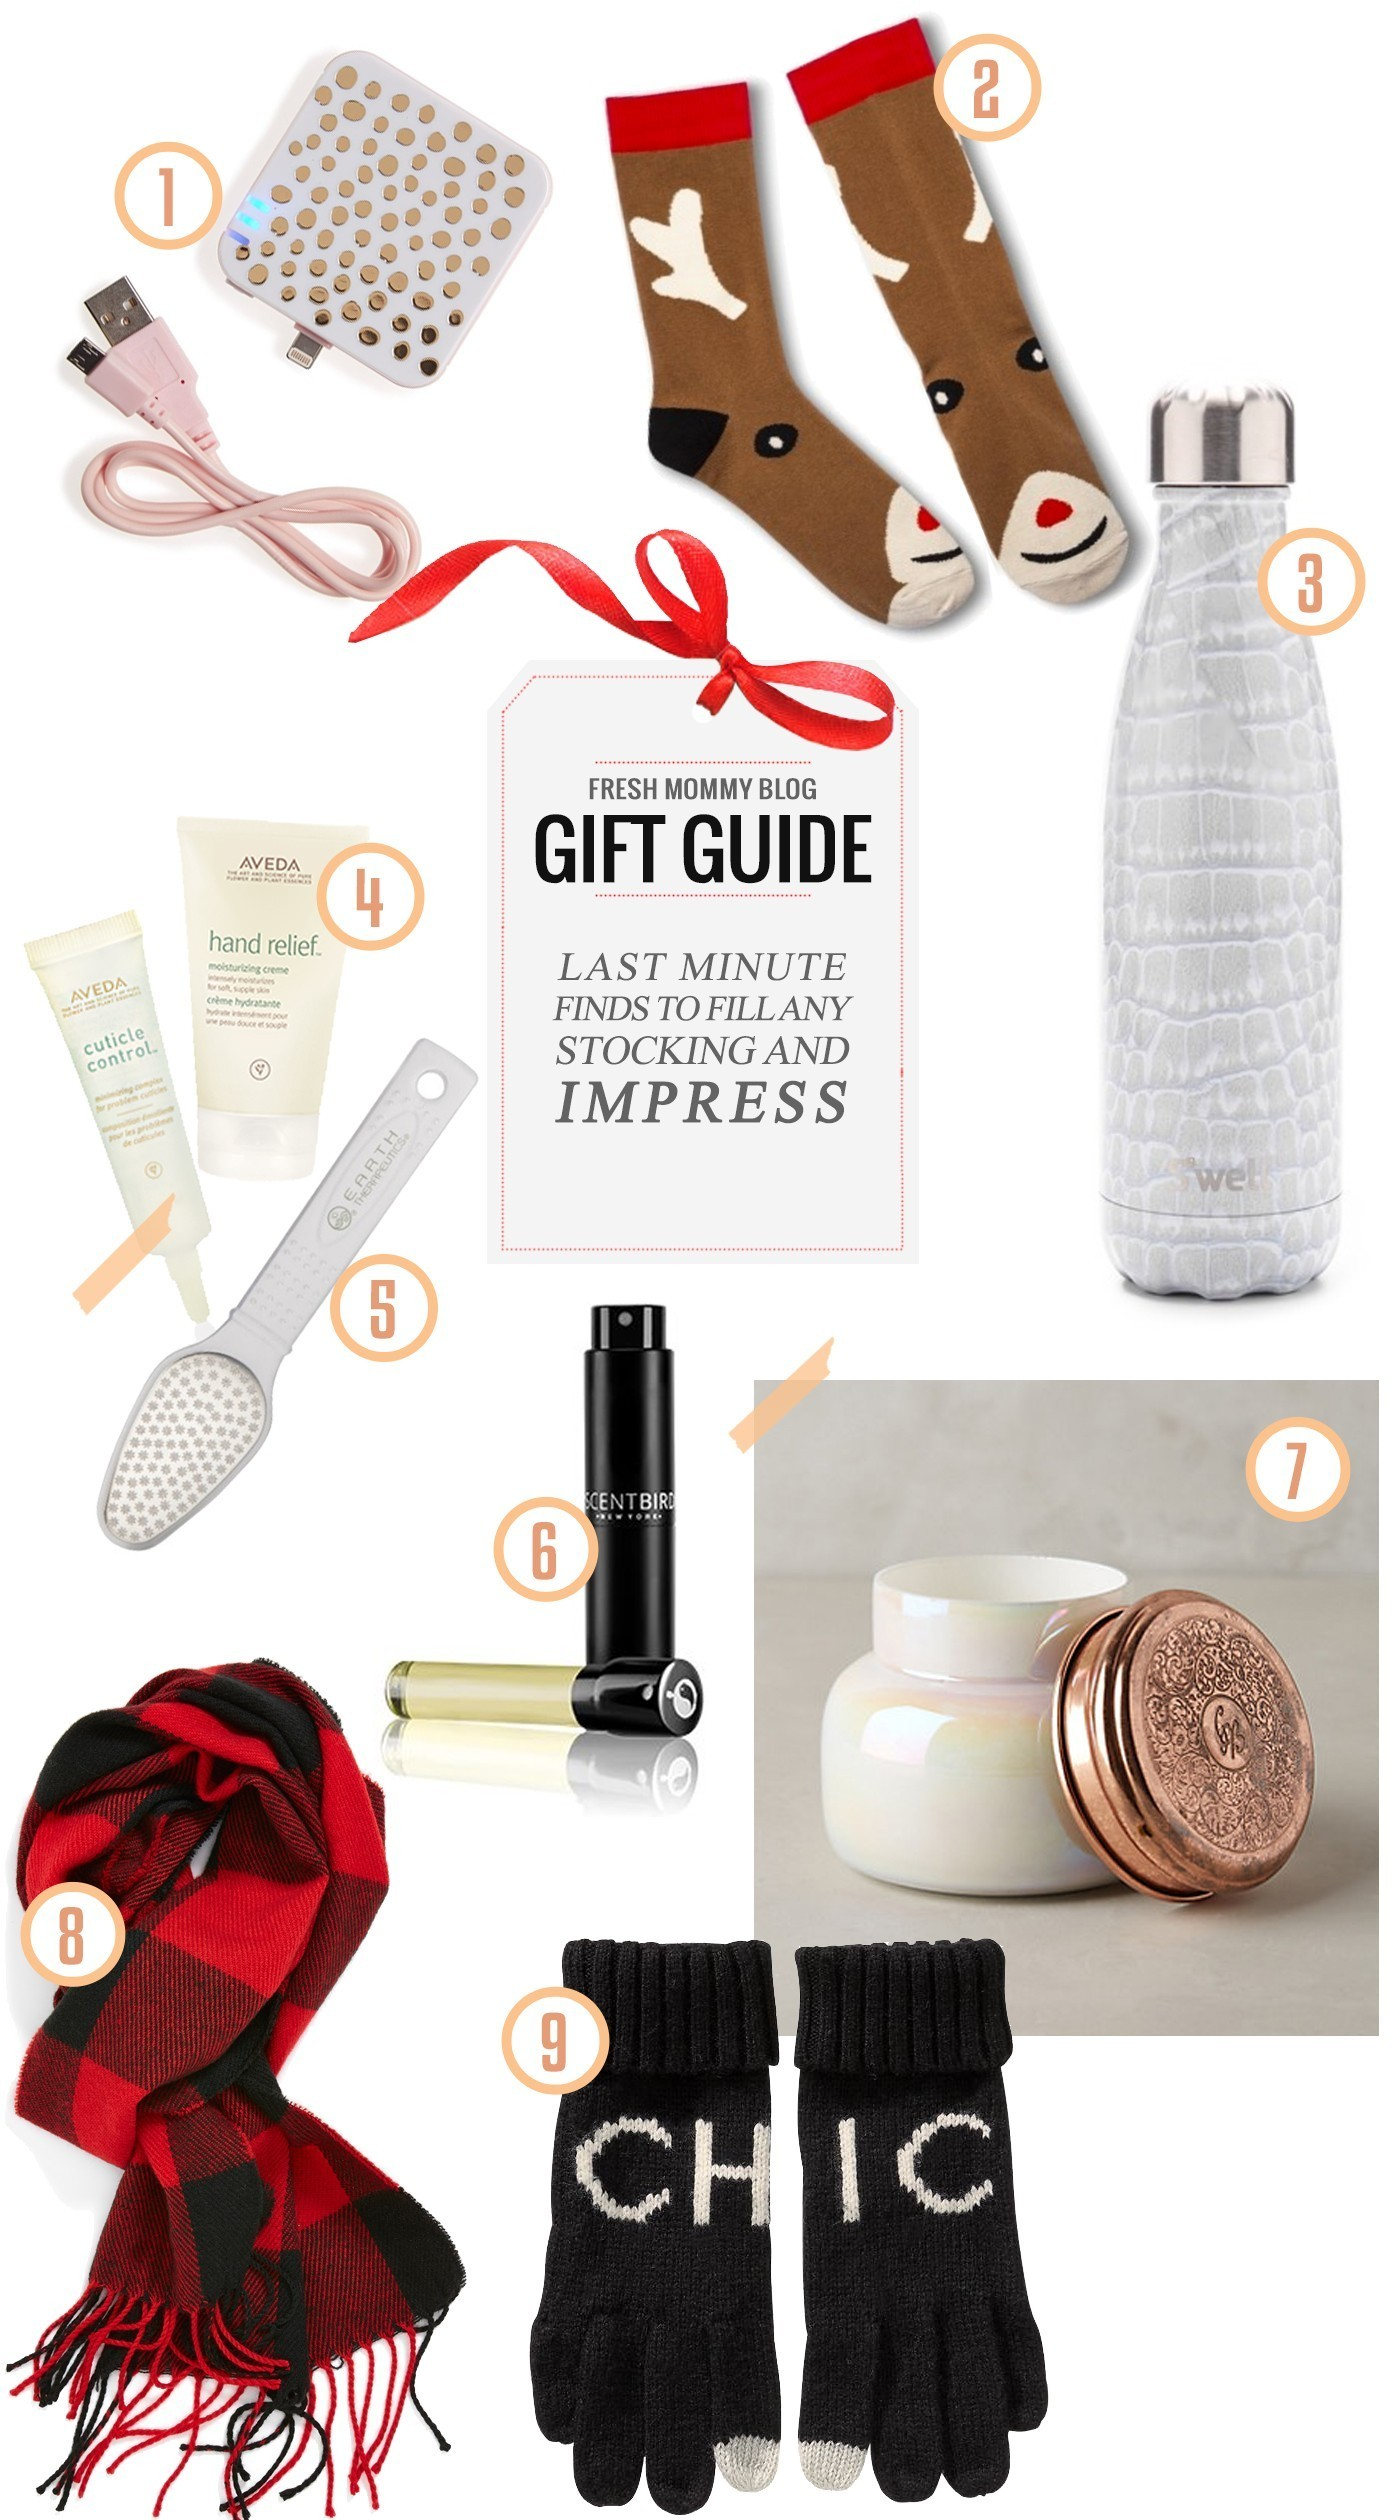 gift guide - LAST MINUTE GIFTS TO IMPRESS!